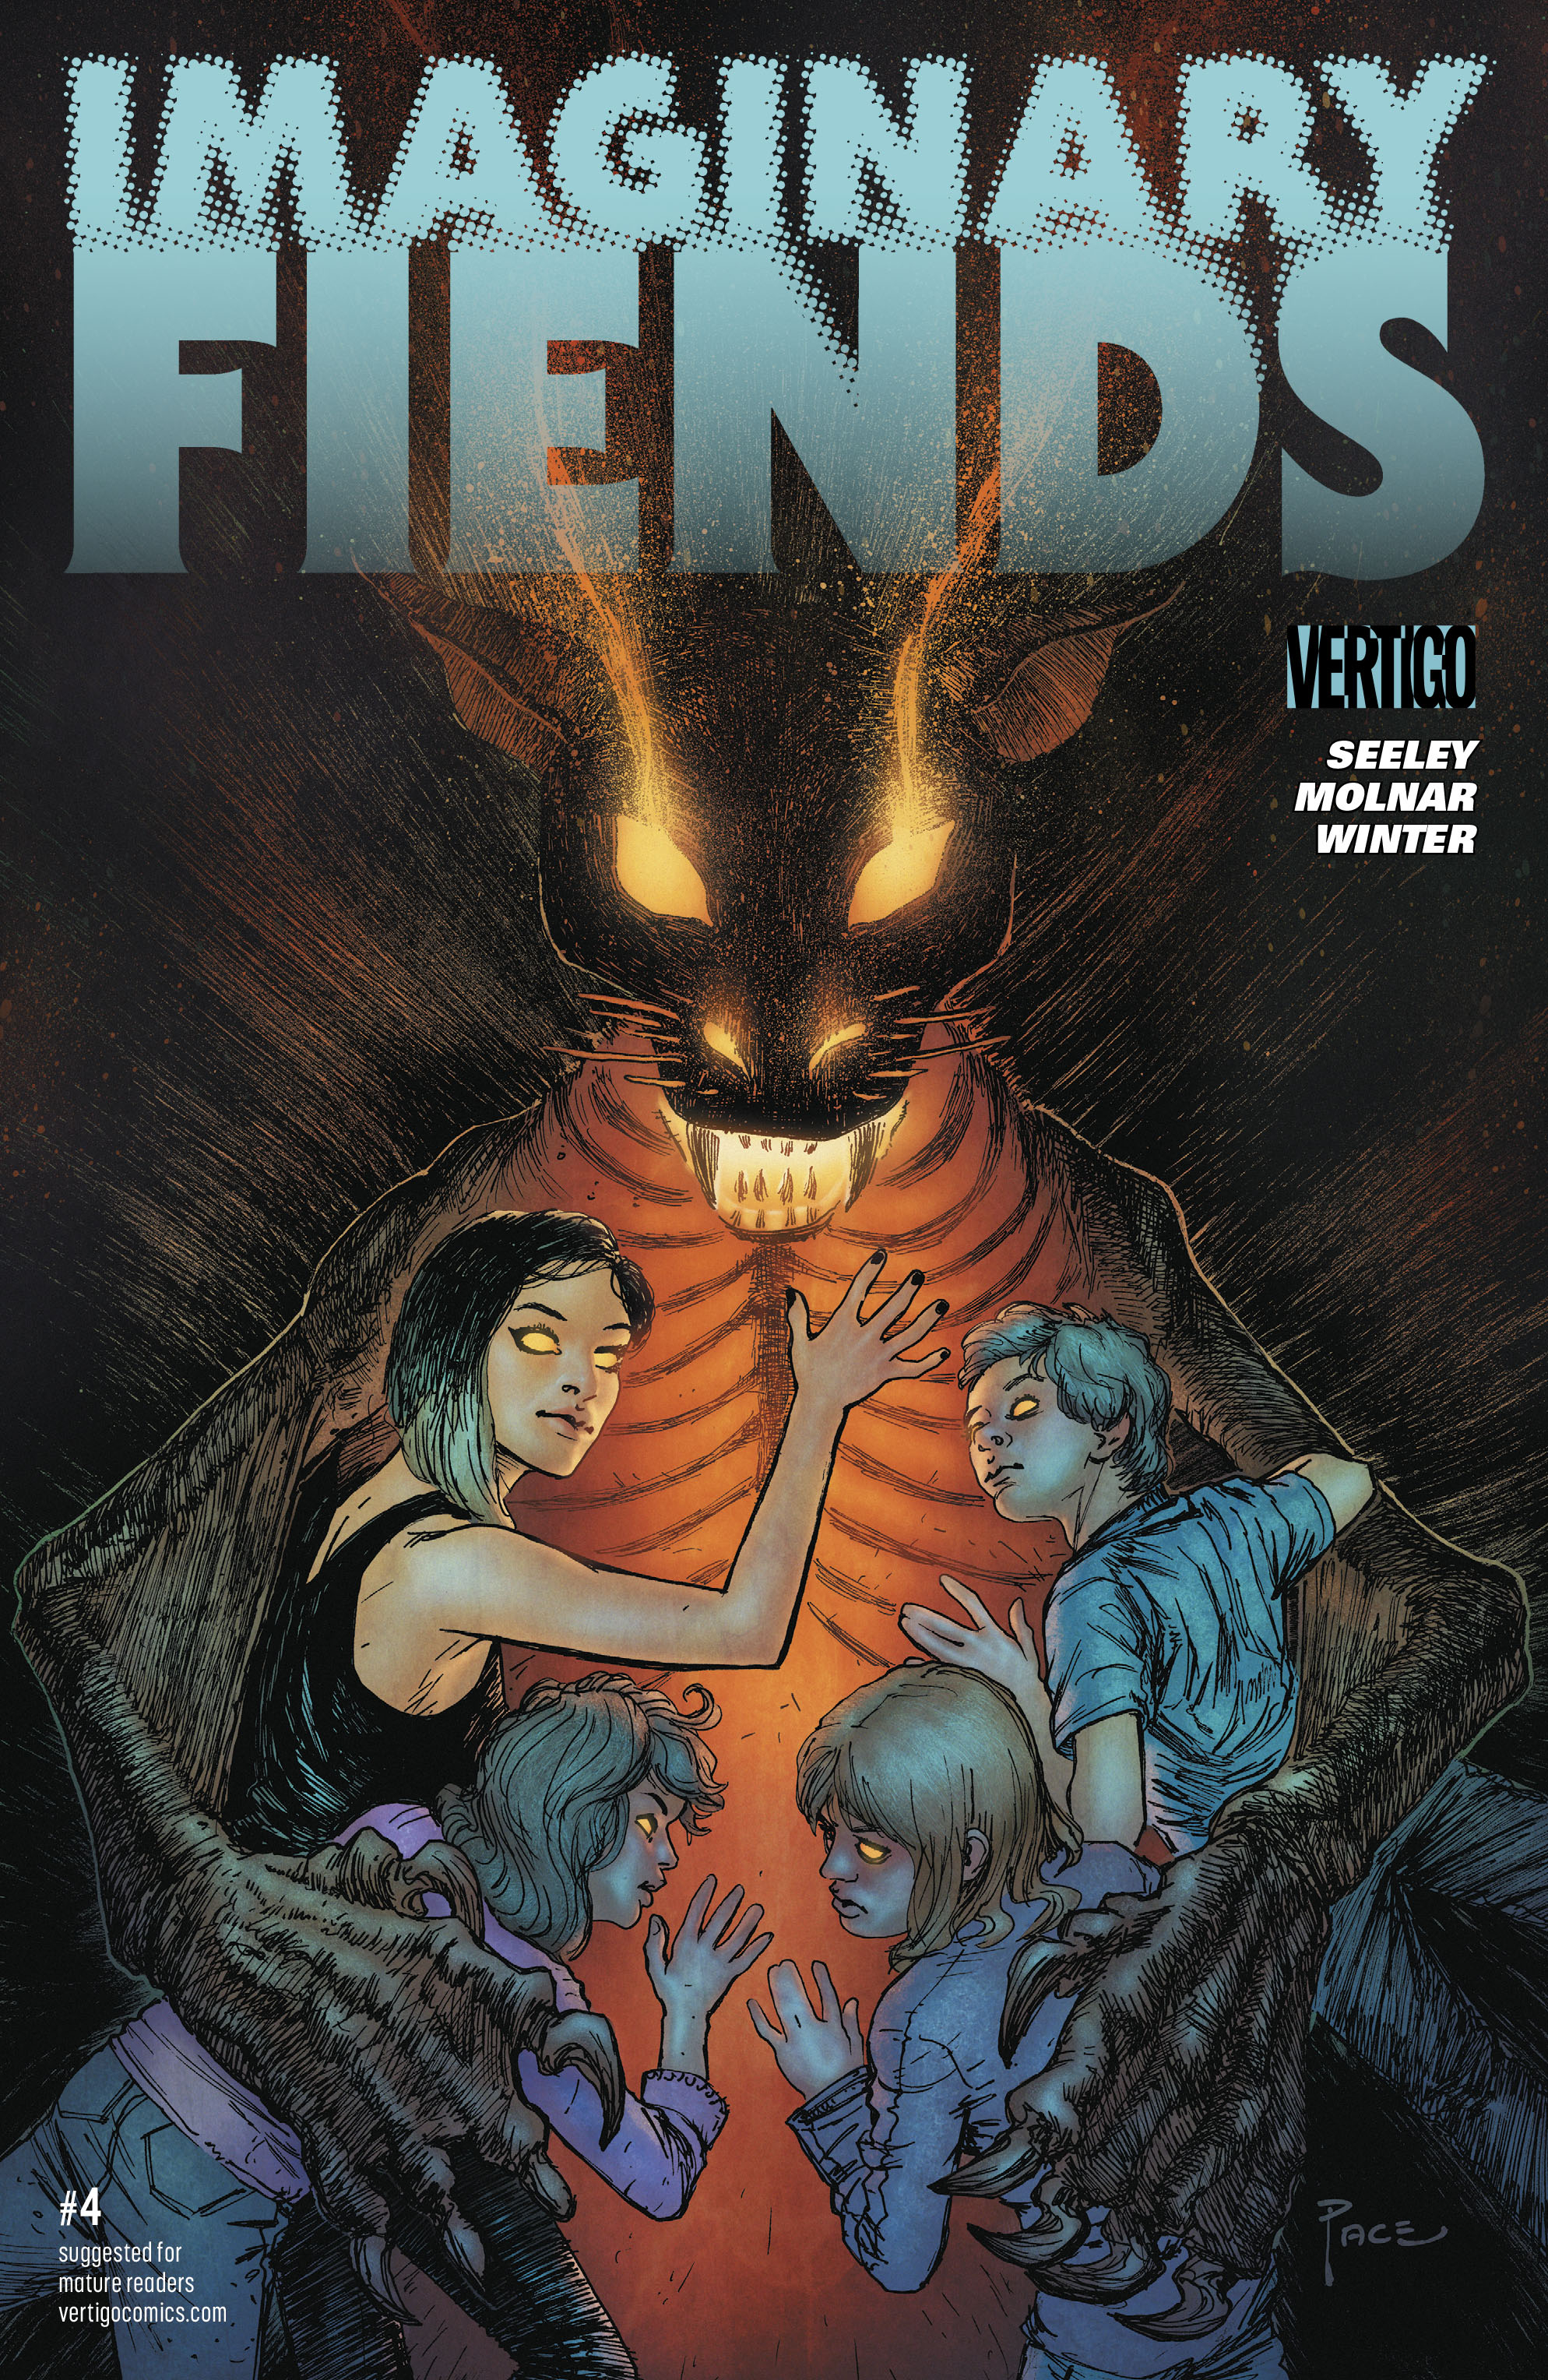 IMAGINARY FIENDS #4 (OF 6)